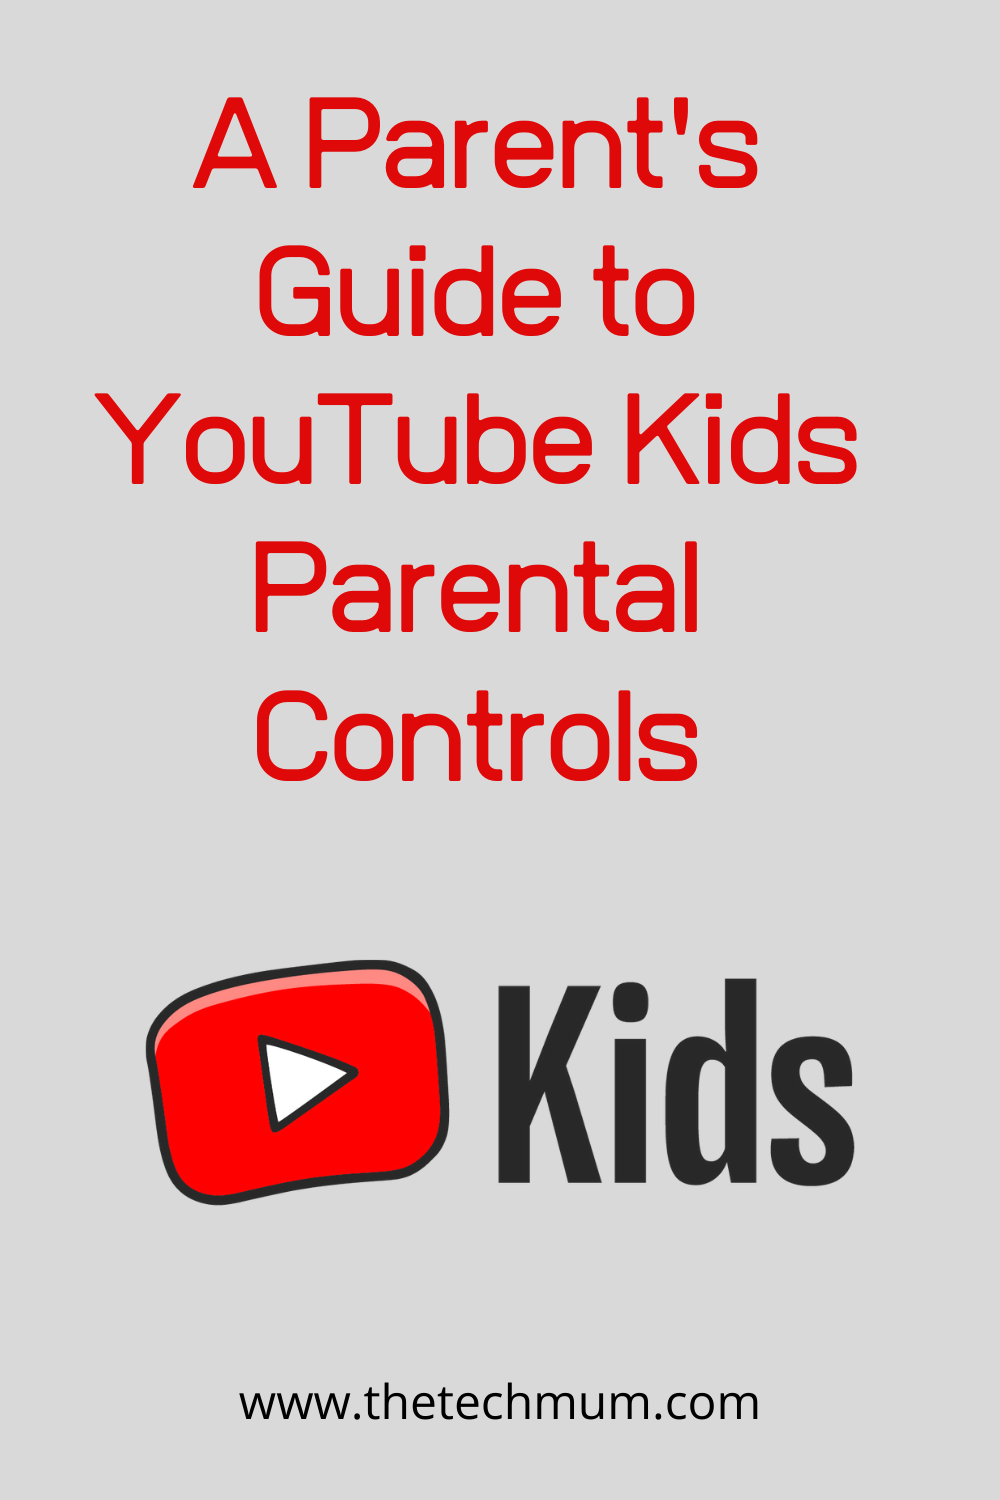 Youtube Kids Parental Controls Youtube Kids Parental Control Parenting Guide